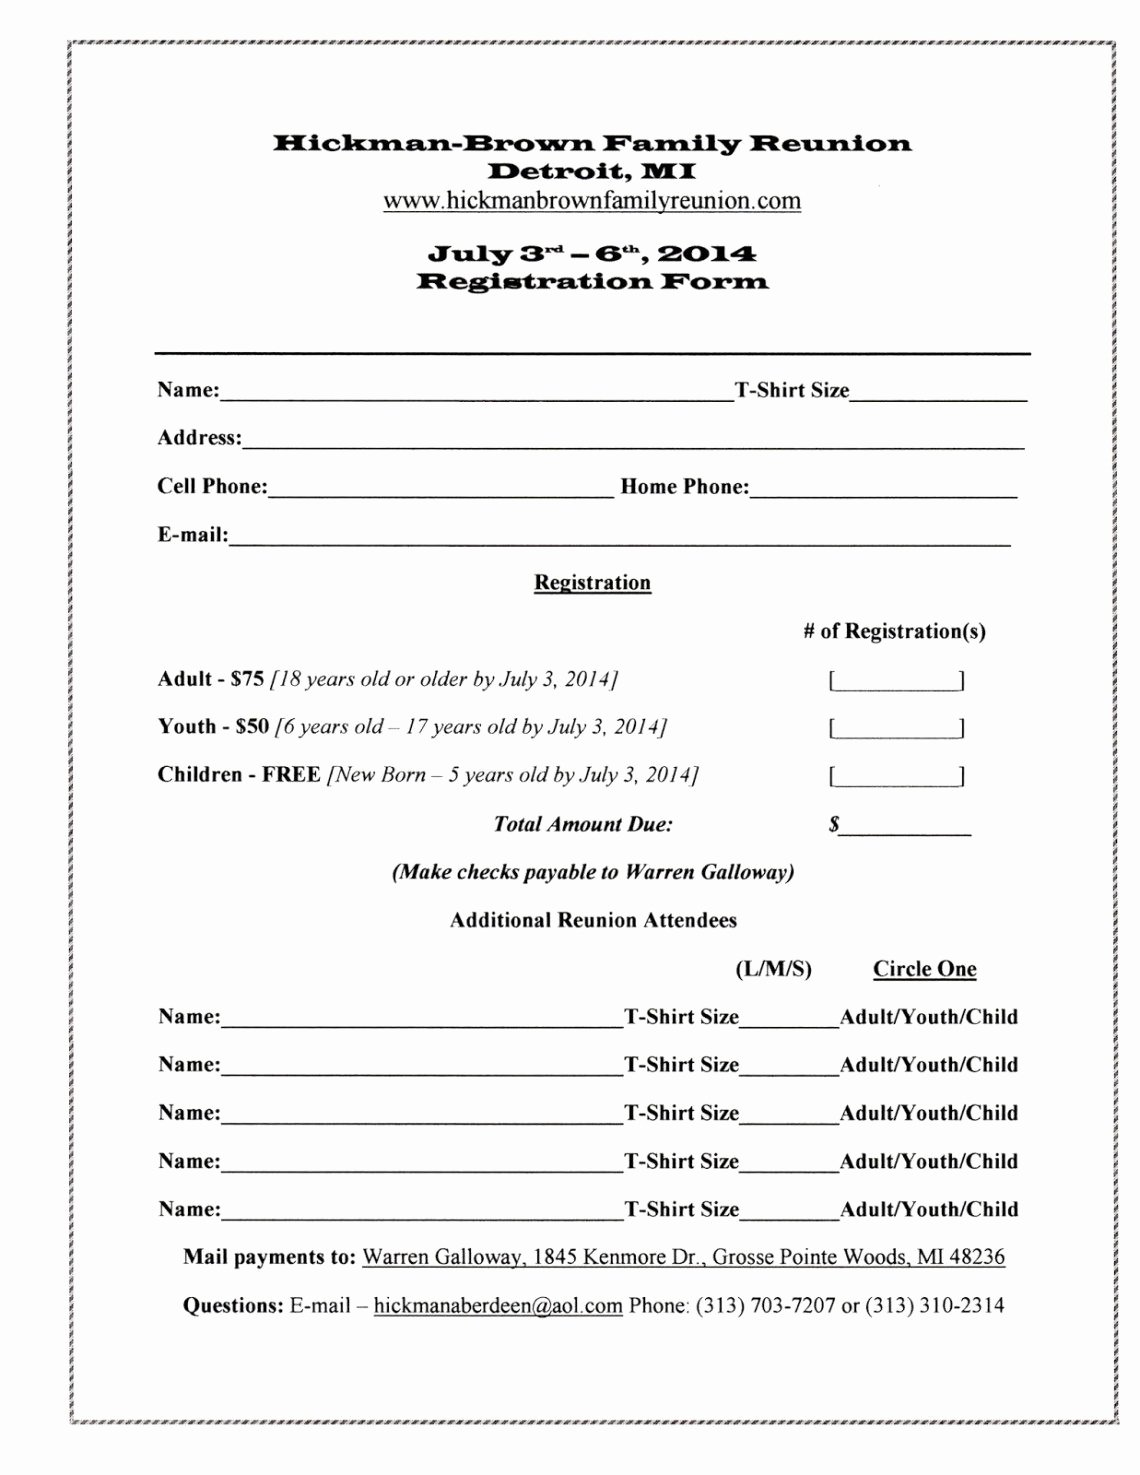 Class Reunion Registration form Template Elegant Pin by Kendra Scott On Gourdin Gourdine Family Reunion